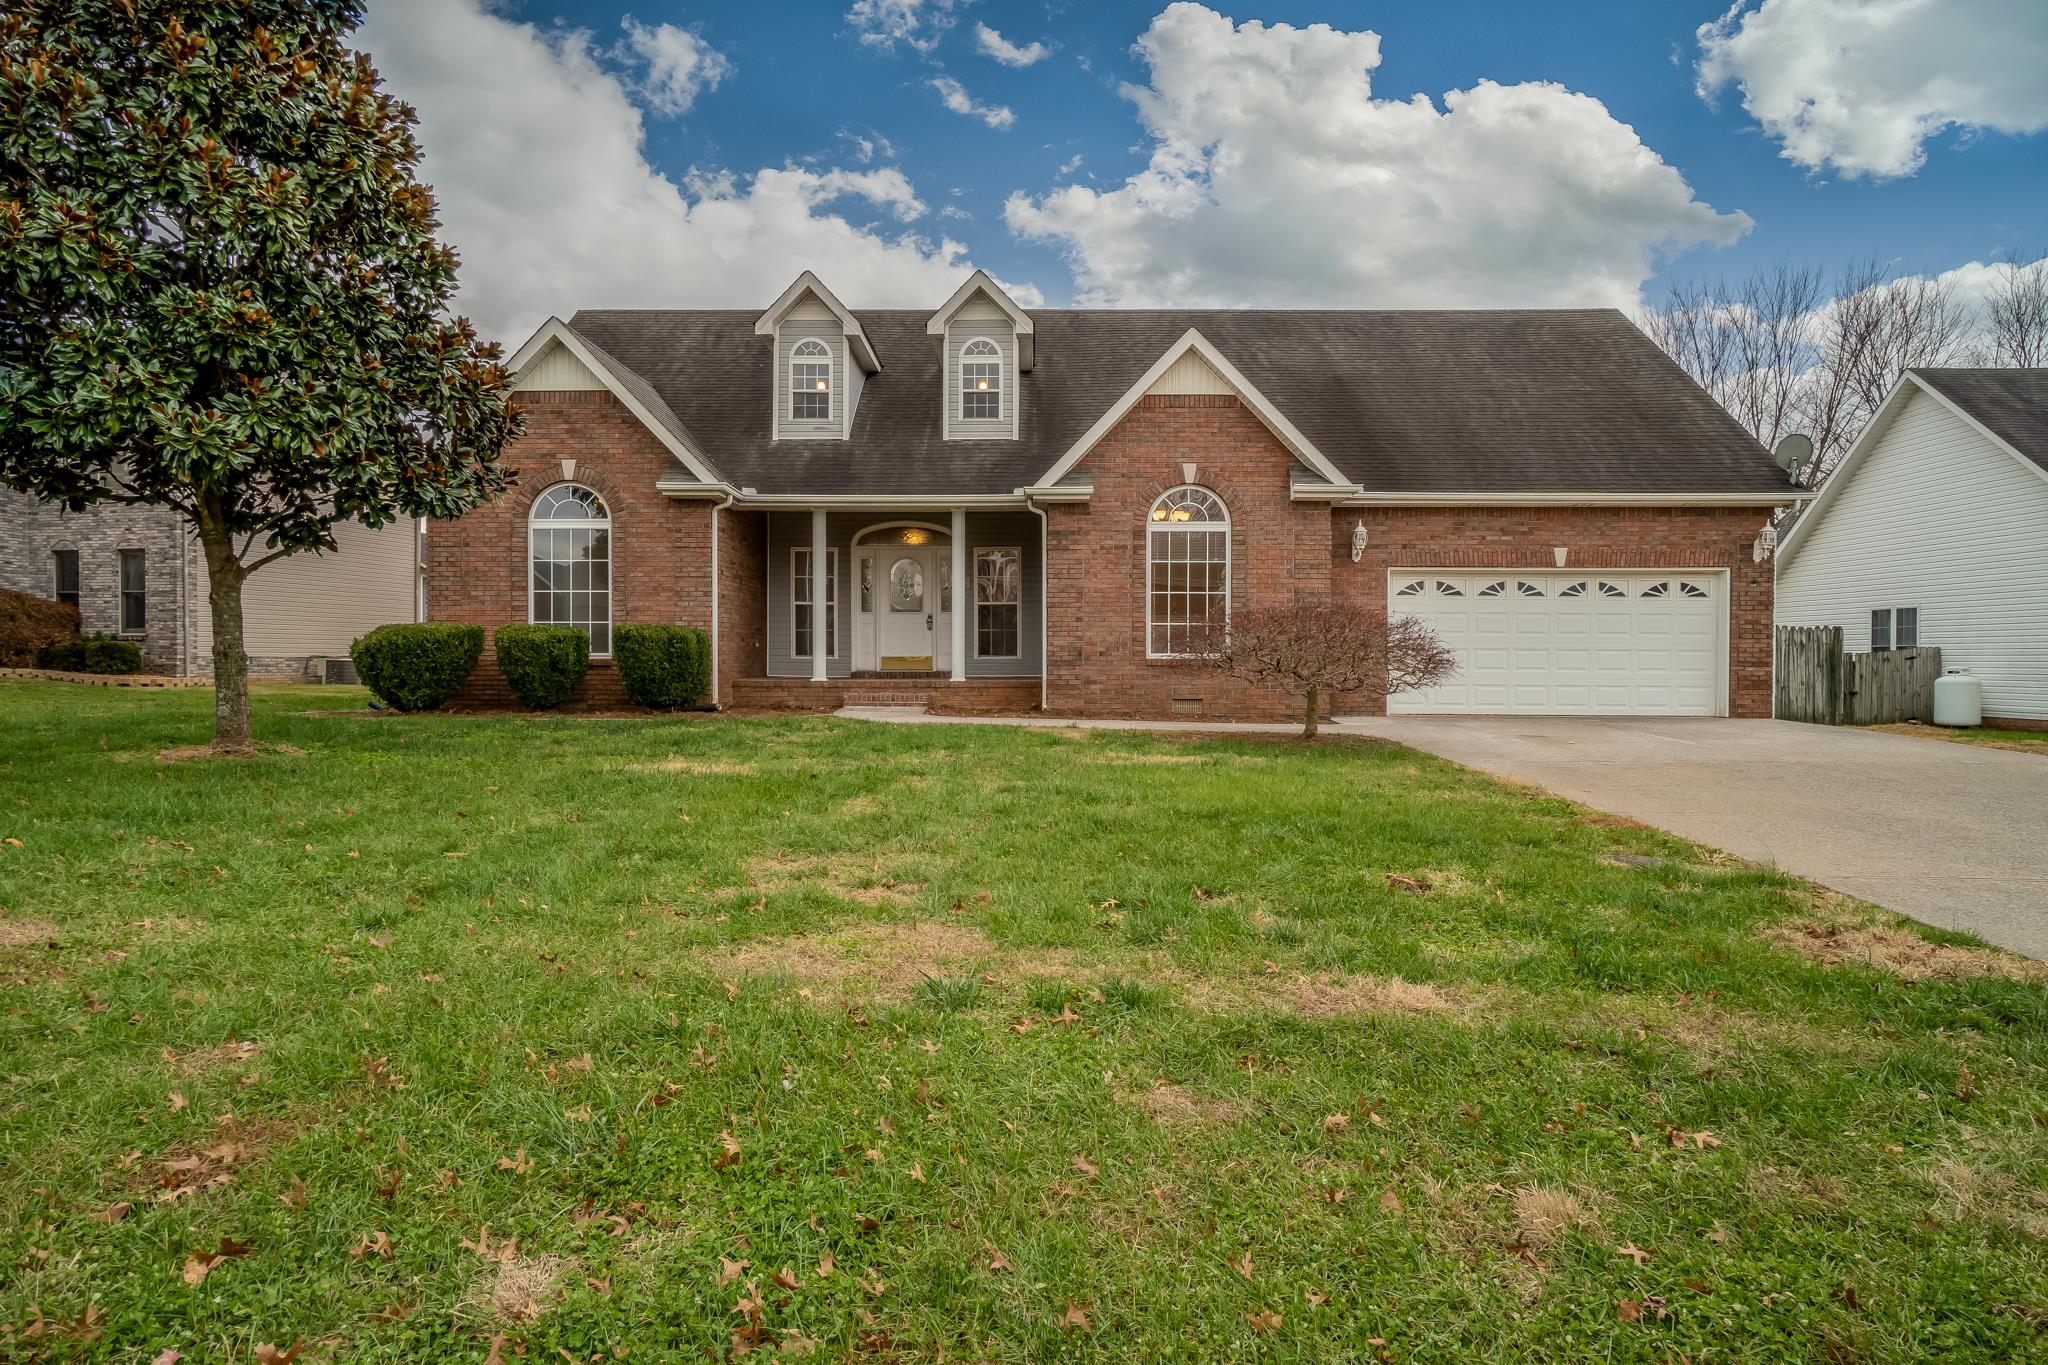 786 Parade Ct, Fort Campbell in Montgomery County County, TN 37040 Home for Sale